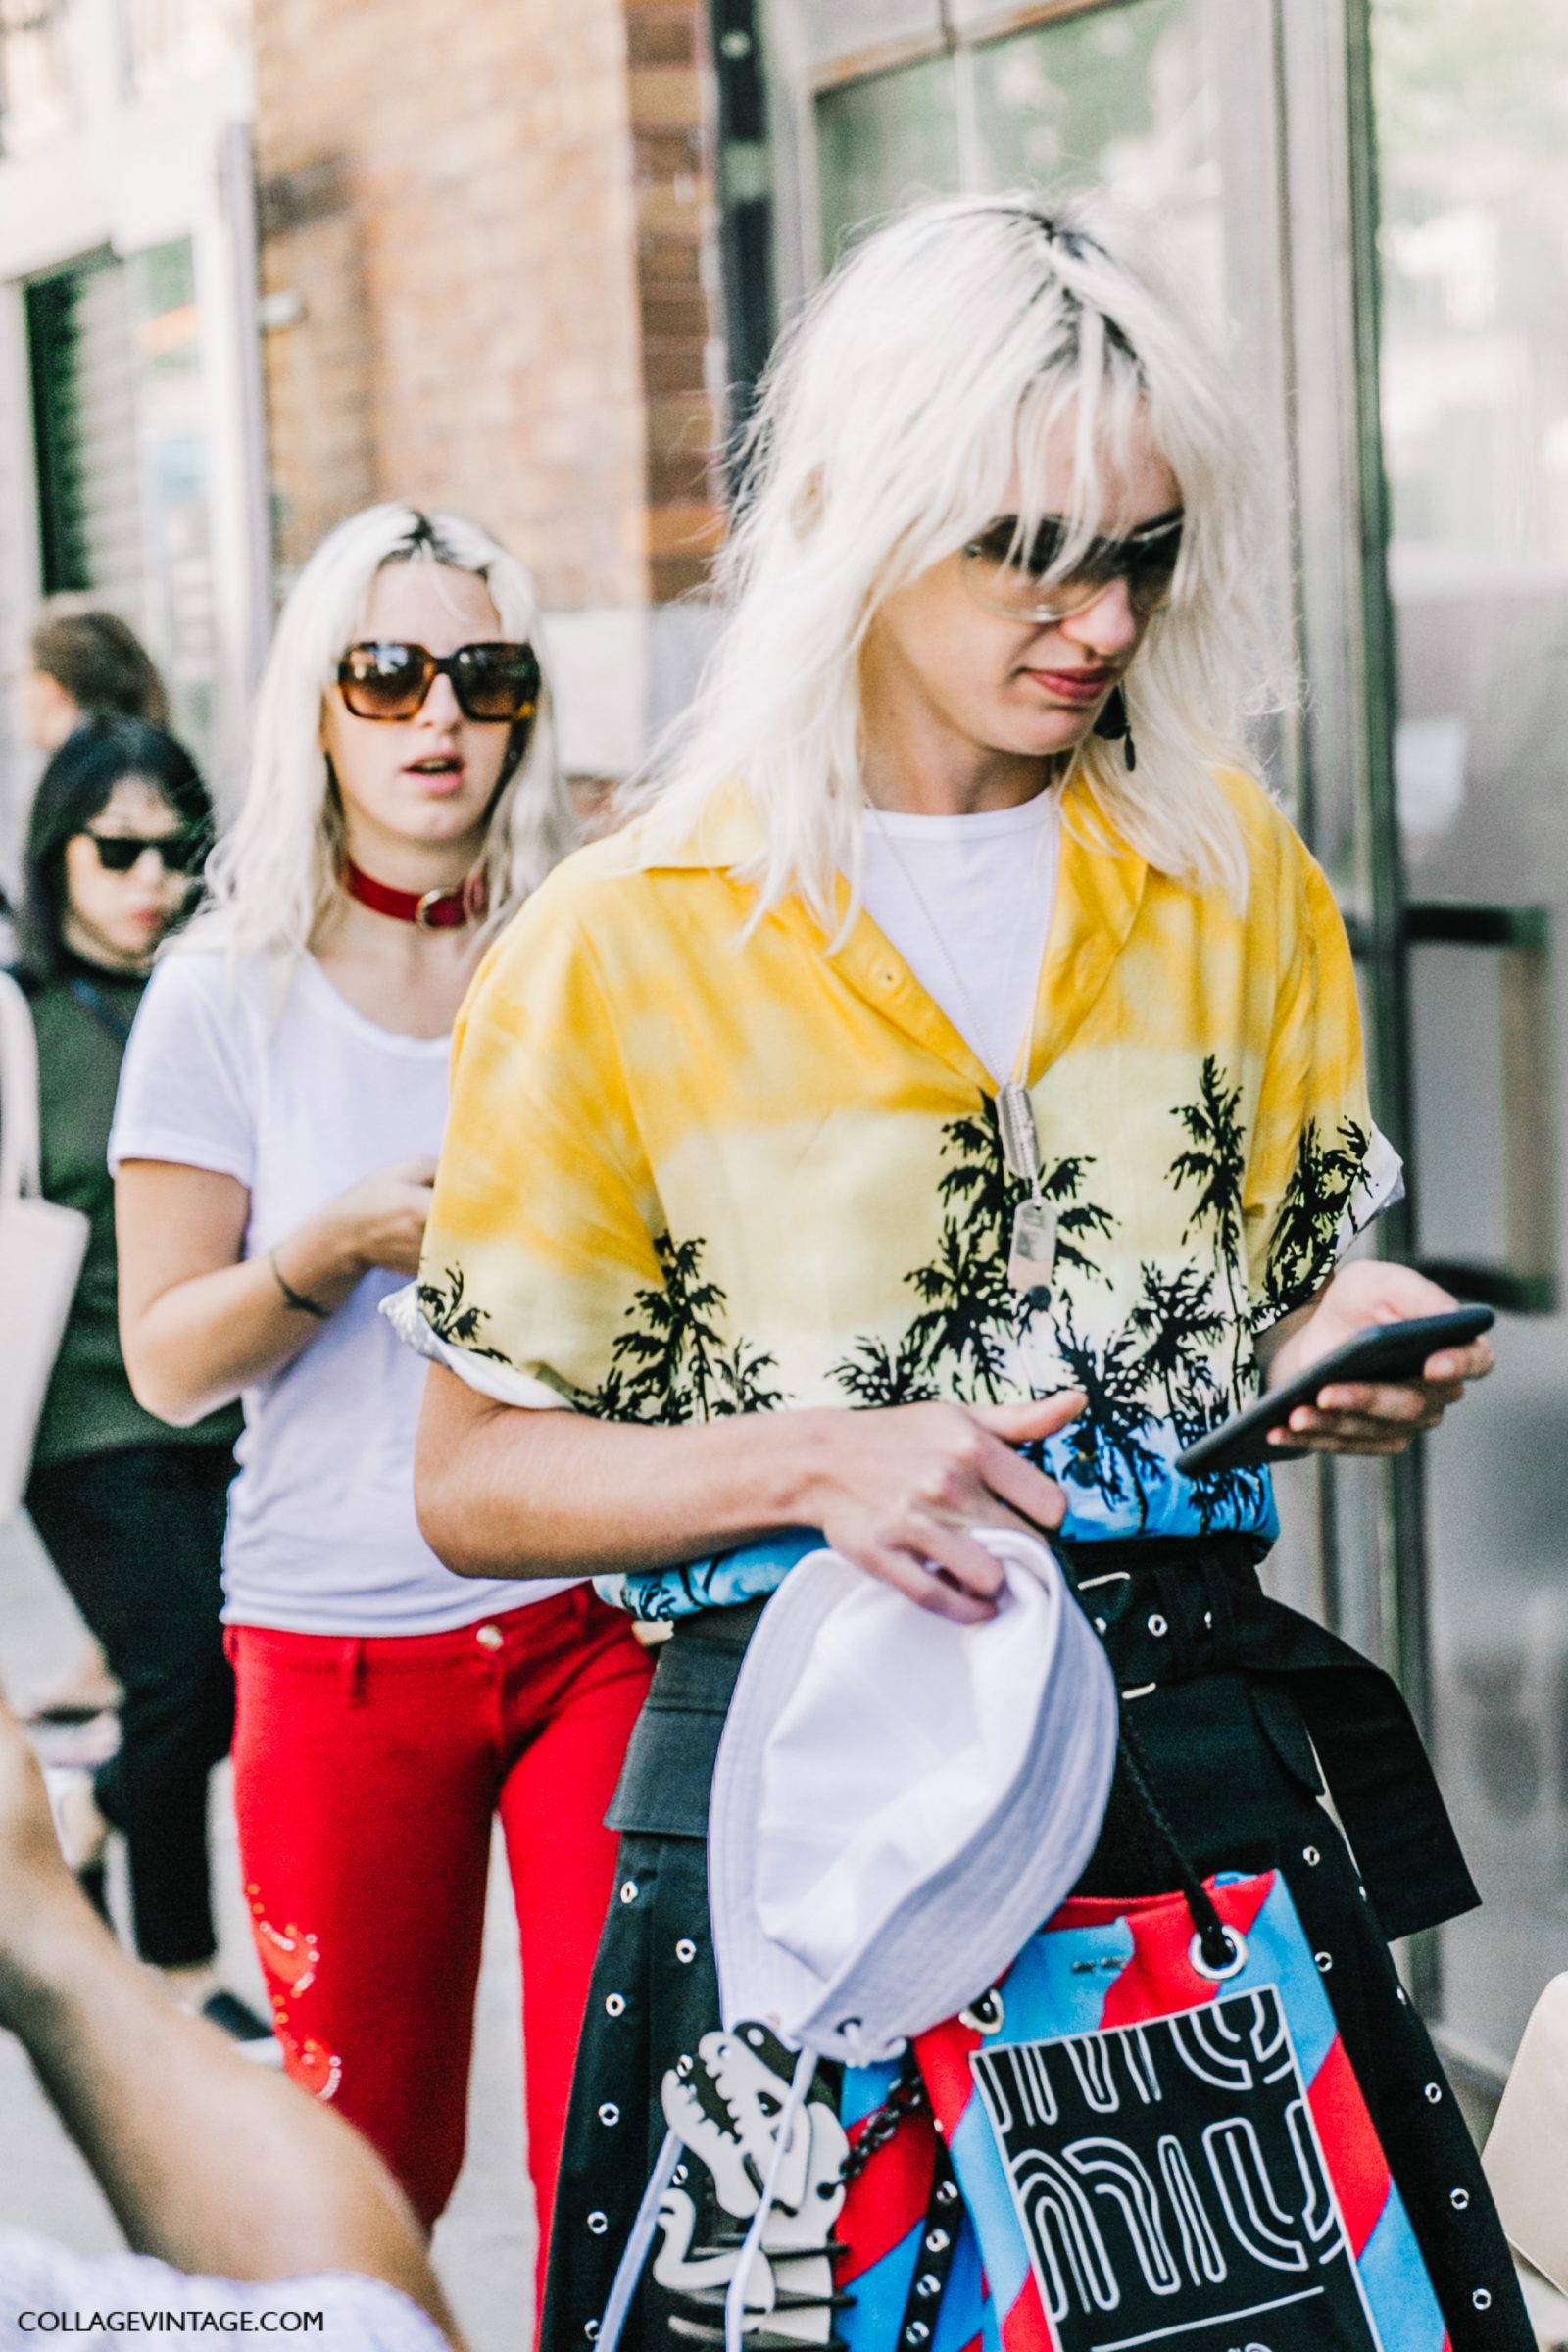 nyfw-new_york_fashion_week_ss17-street_style-outfits-collage_vintage-vintage-mansur_gavriel-rodarte-coach-57